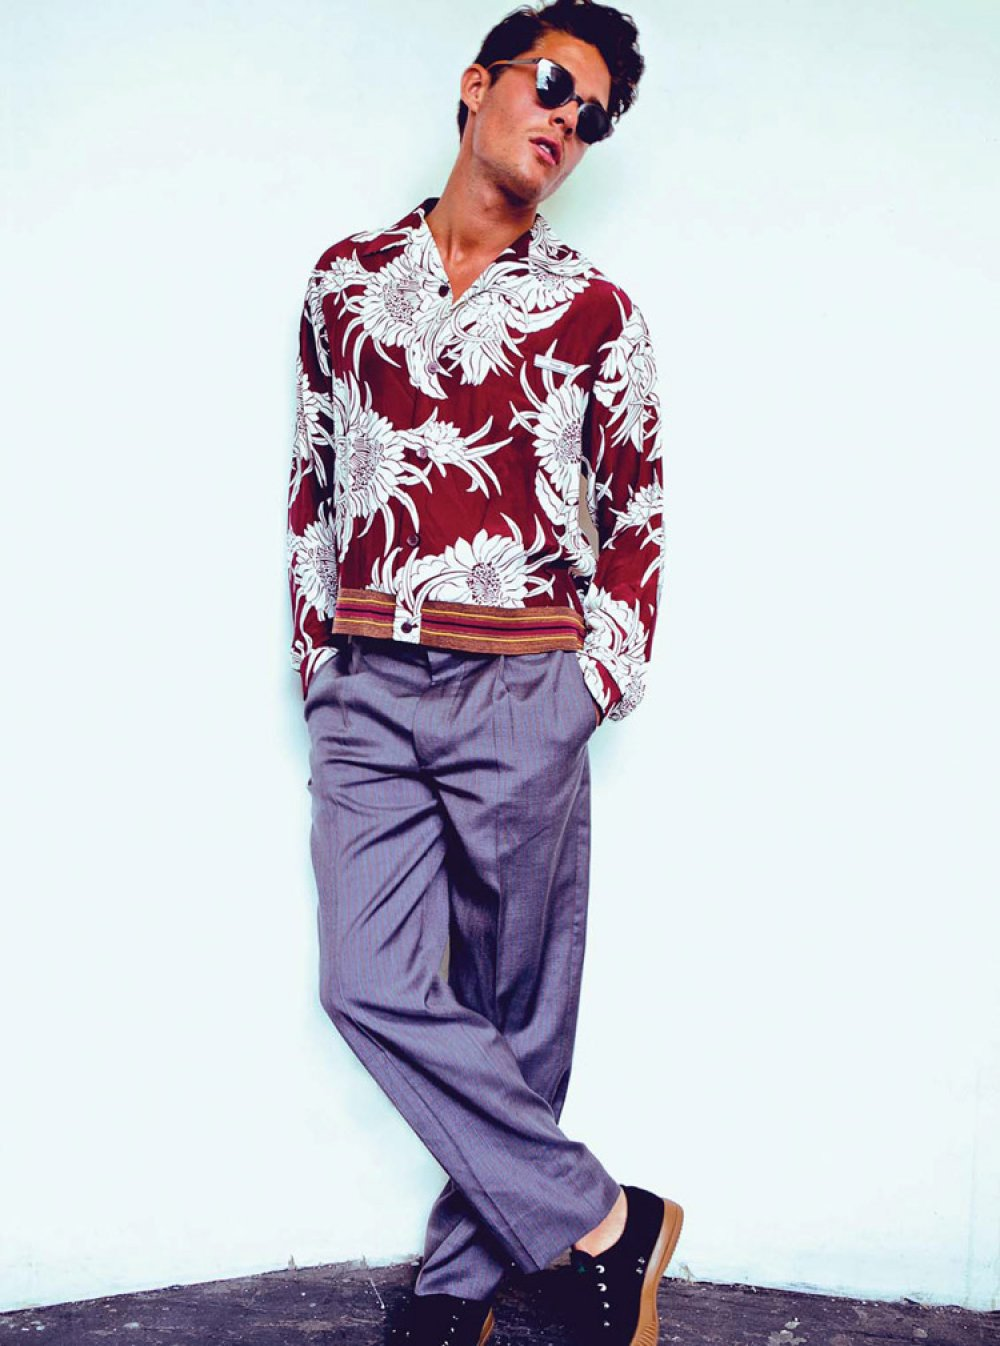 Cesar Casier For August Man Malaysia August 2014 Whynot Blog